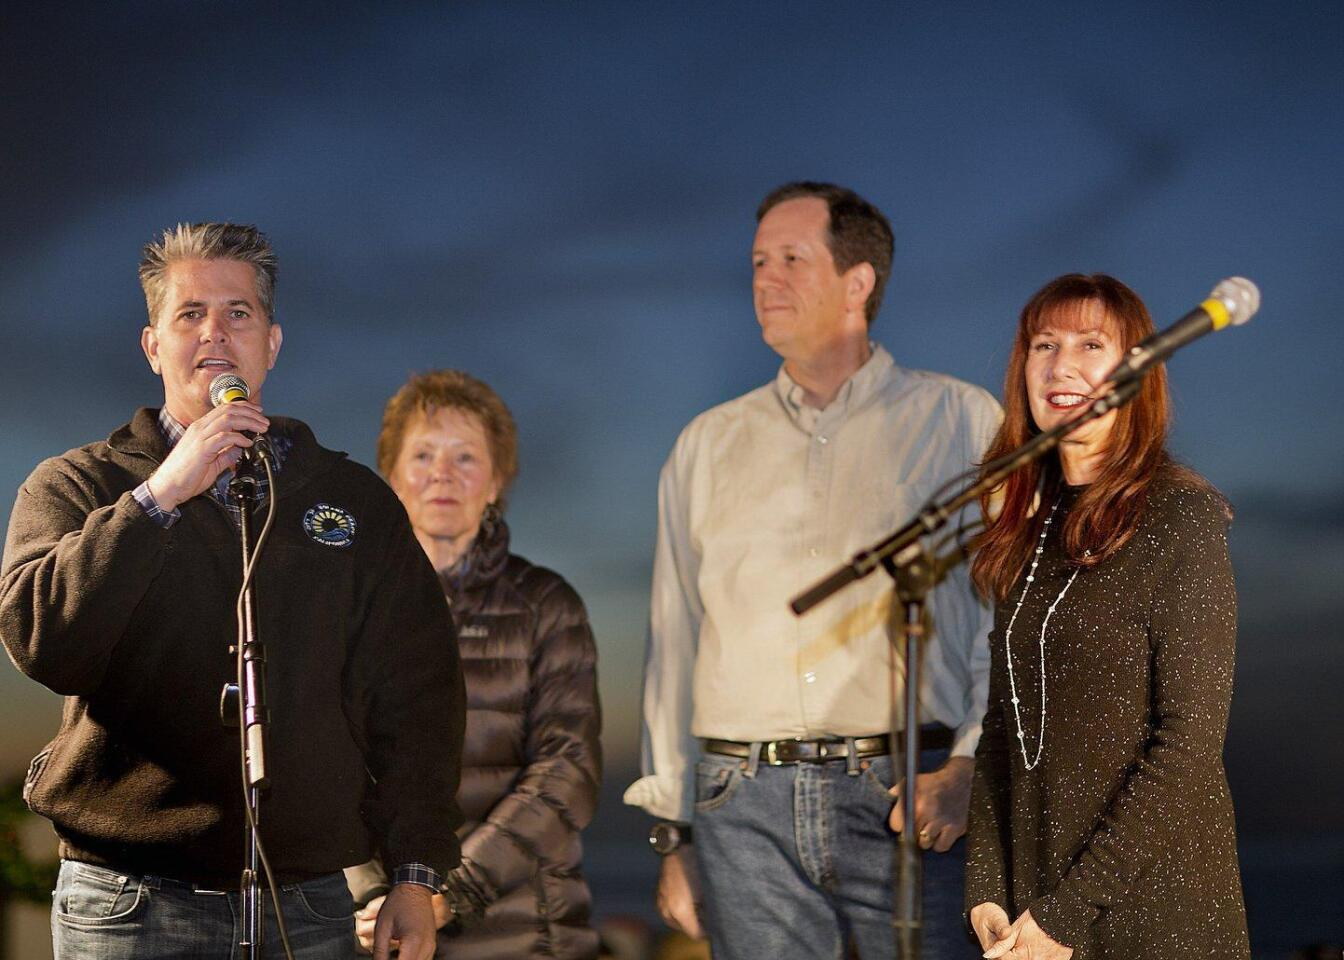 Solana Beach city council members at the tree lighting included Mayor Mike Nichols, Judy Hagenauer, David Zito, and Jewel Edson